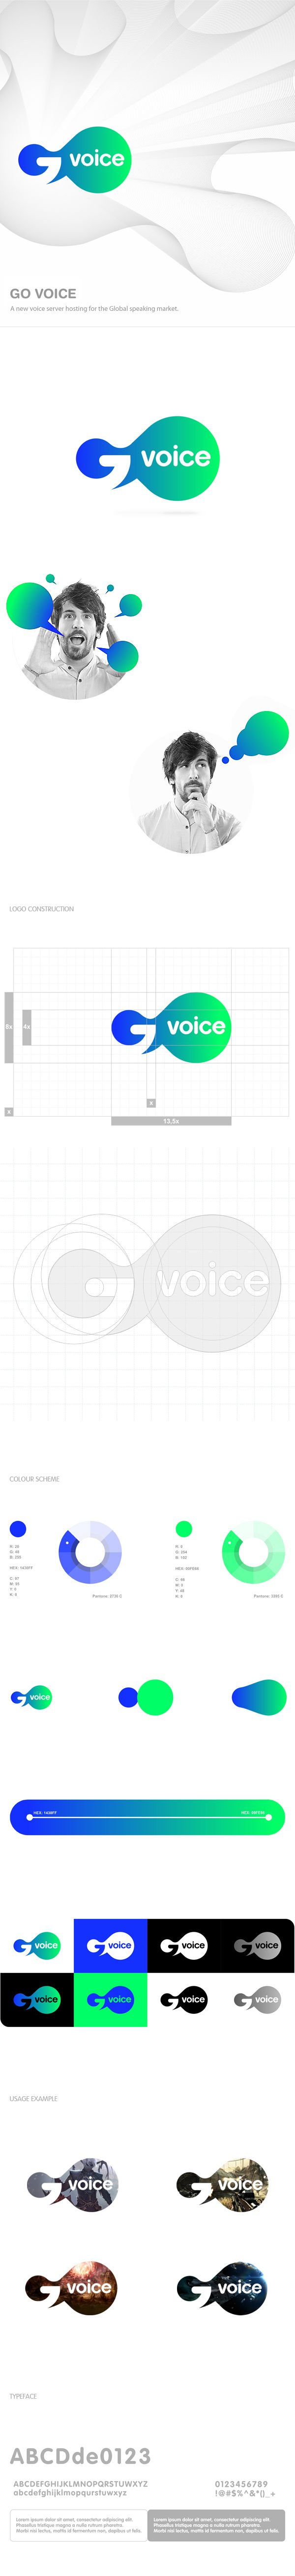 Go Voice by Fuse Collective #logo #voice #id